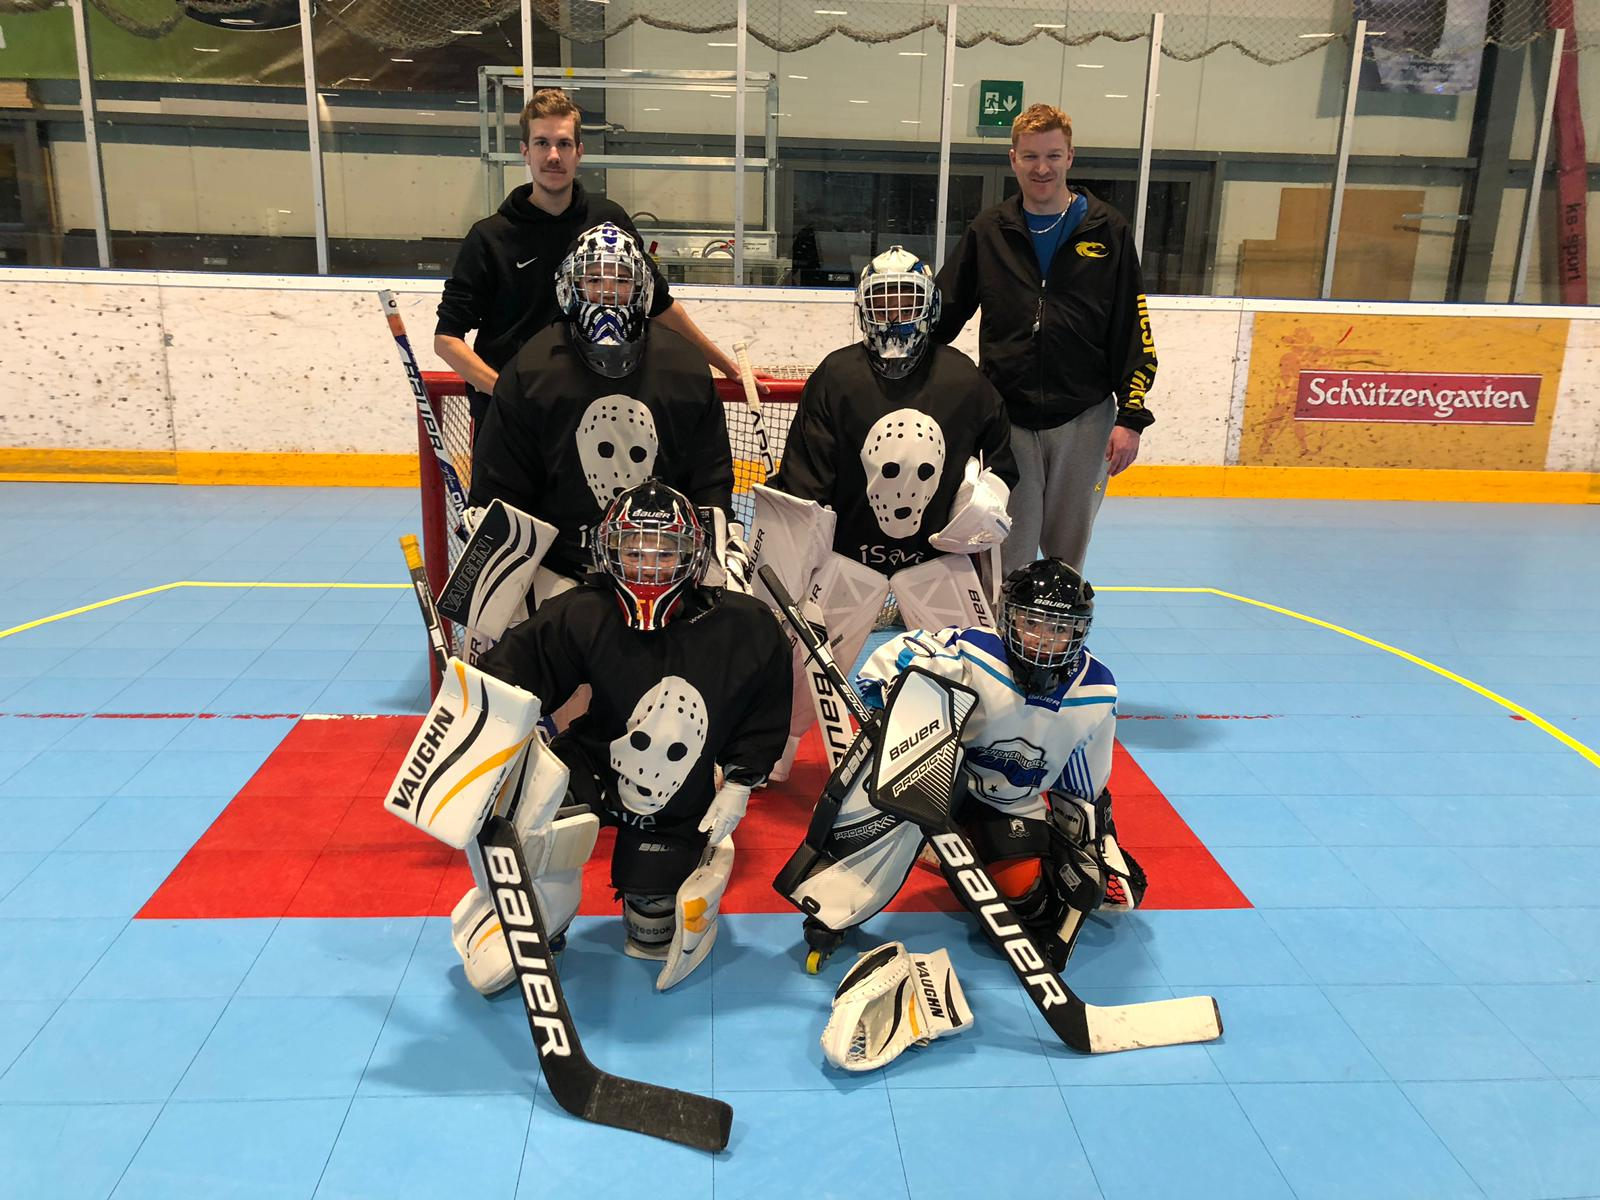 Die Junioren - Goalies in Aktion